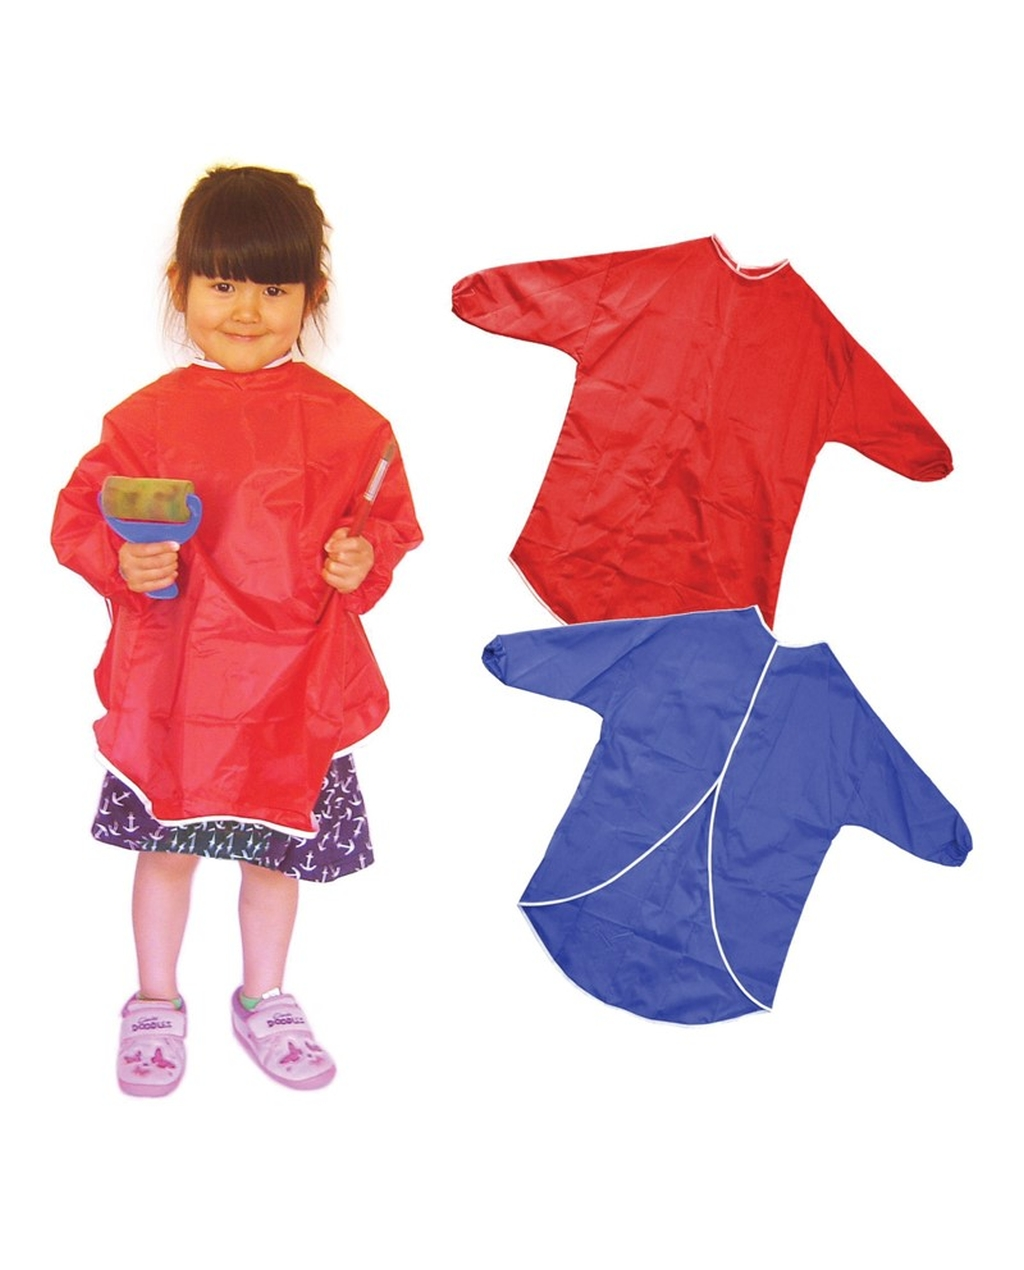 Children's Play Apron 70cm Red